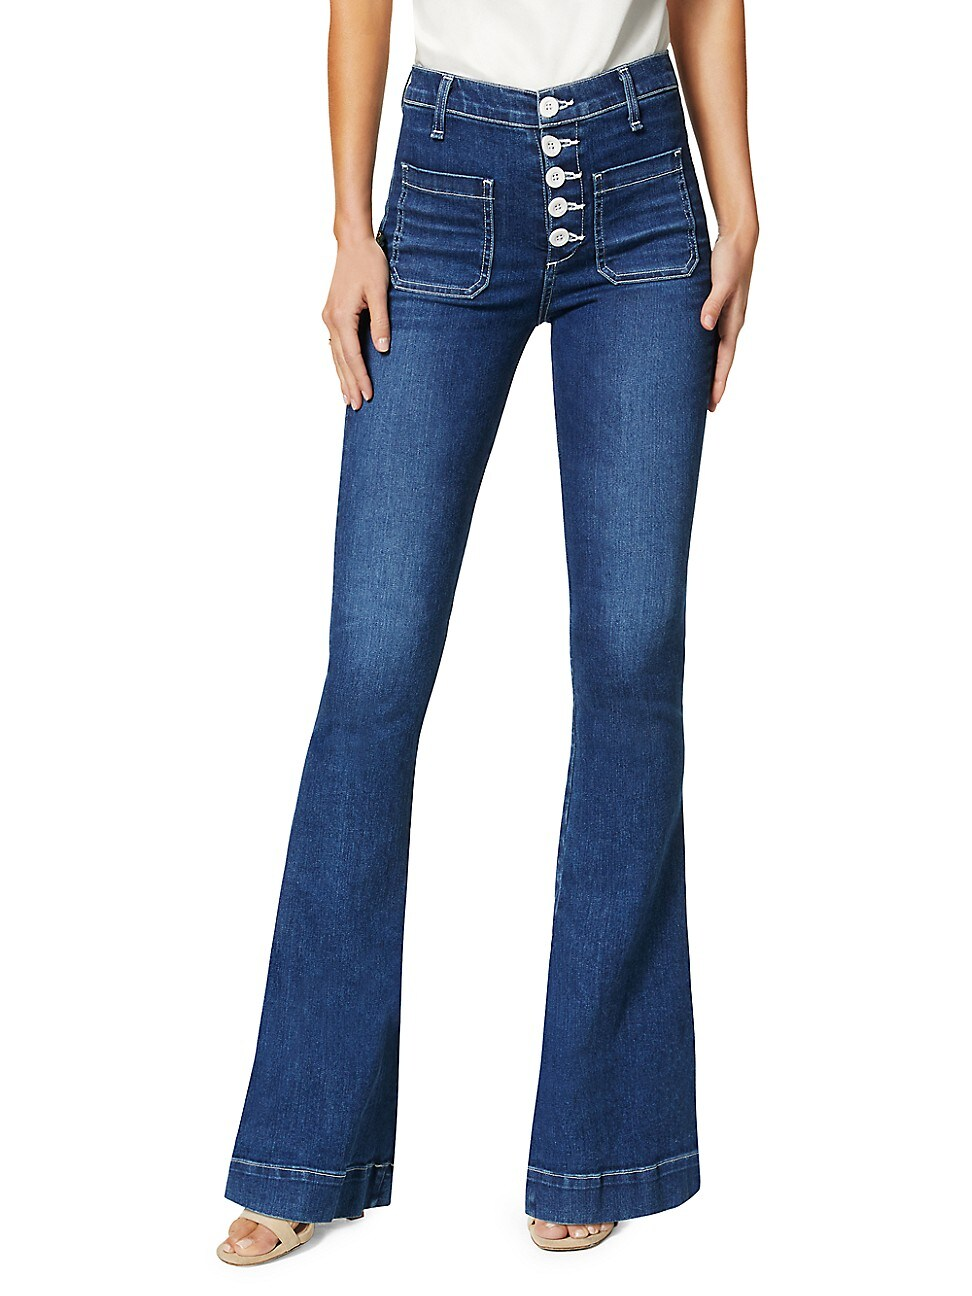 Ramy Brook WOMEN'S CINDY BUTTON-FLY FLARE JEANS